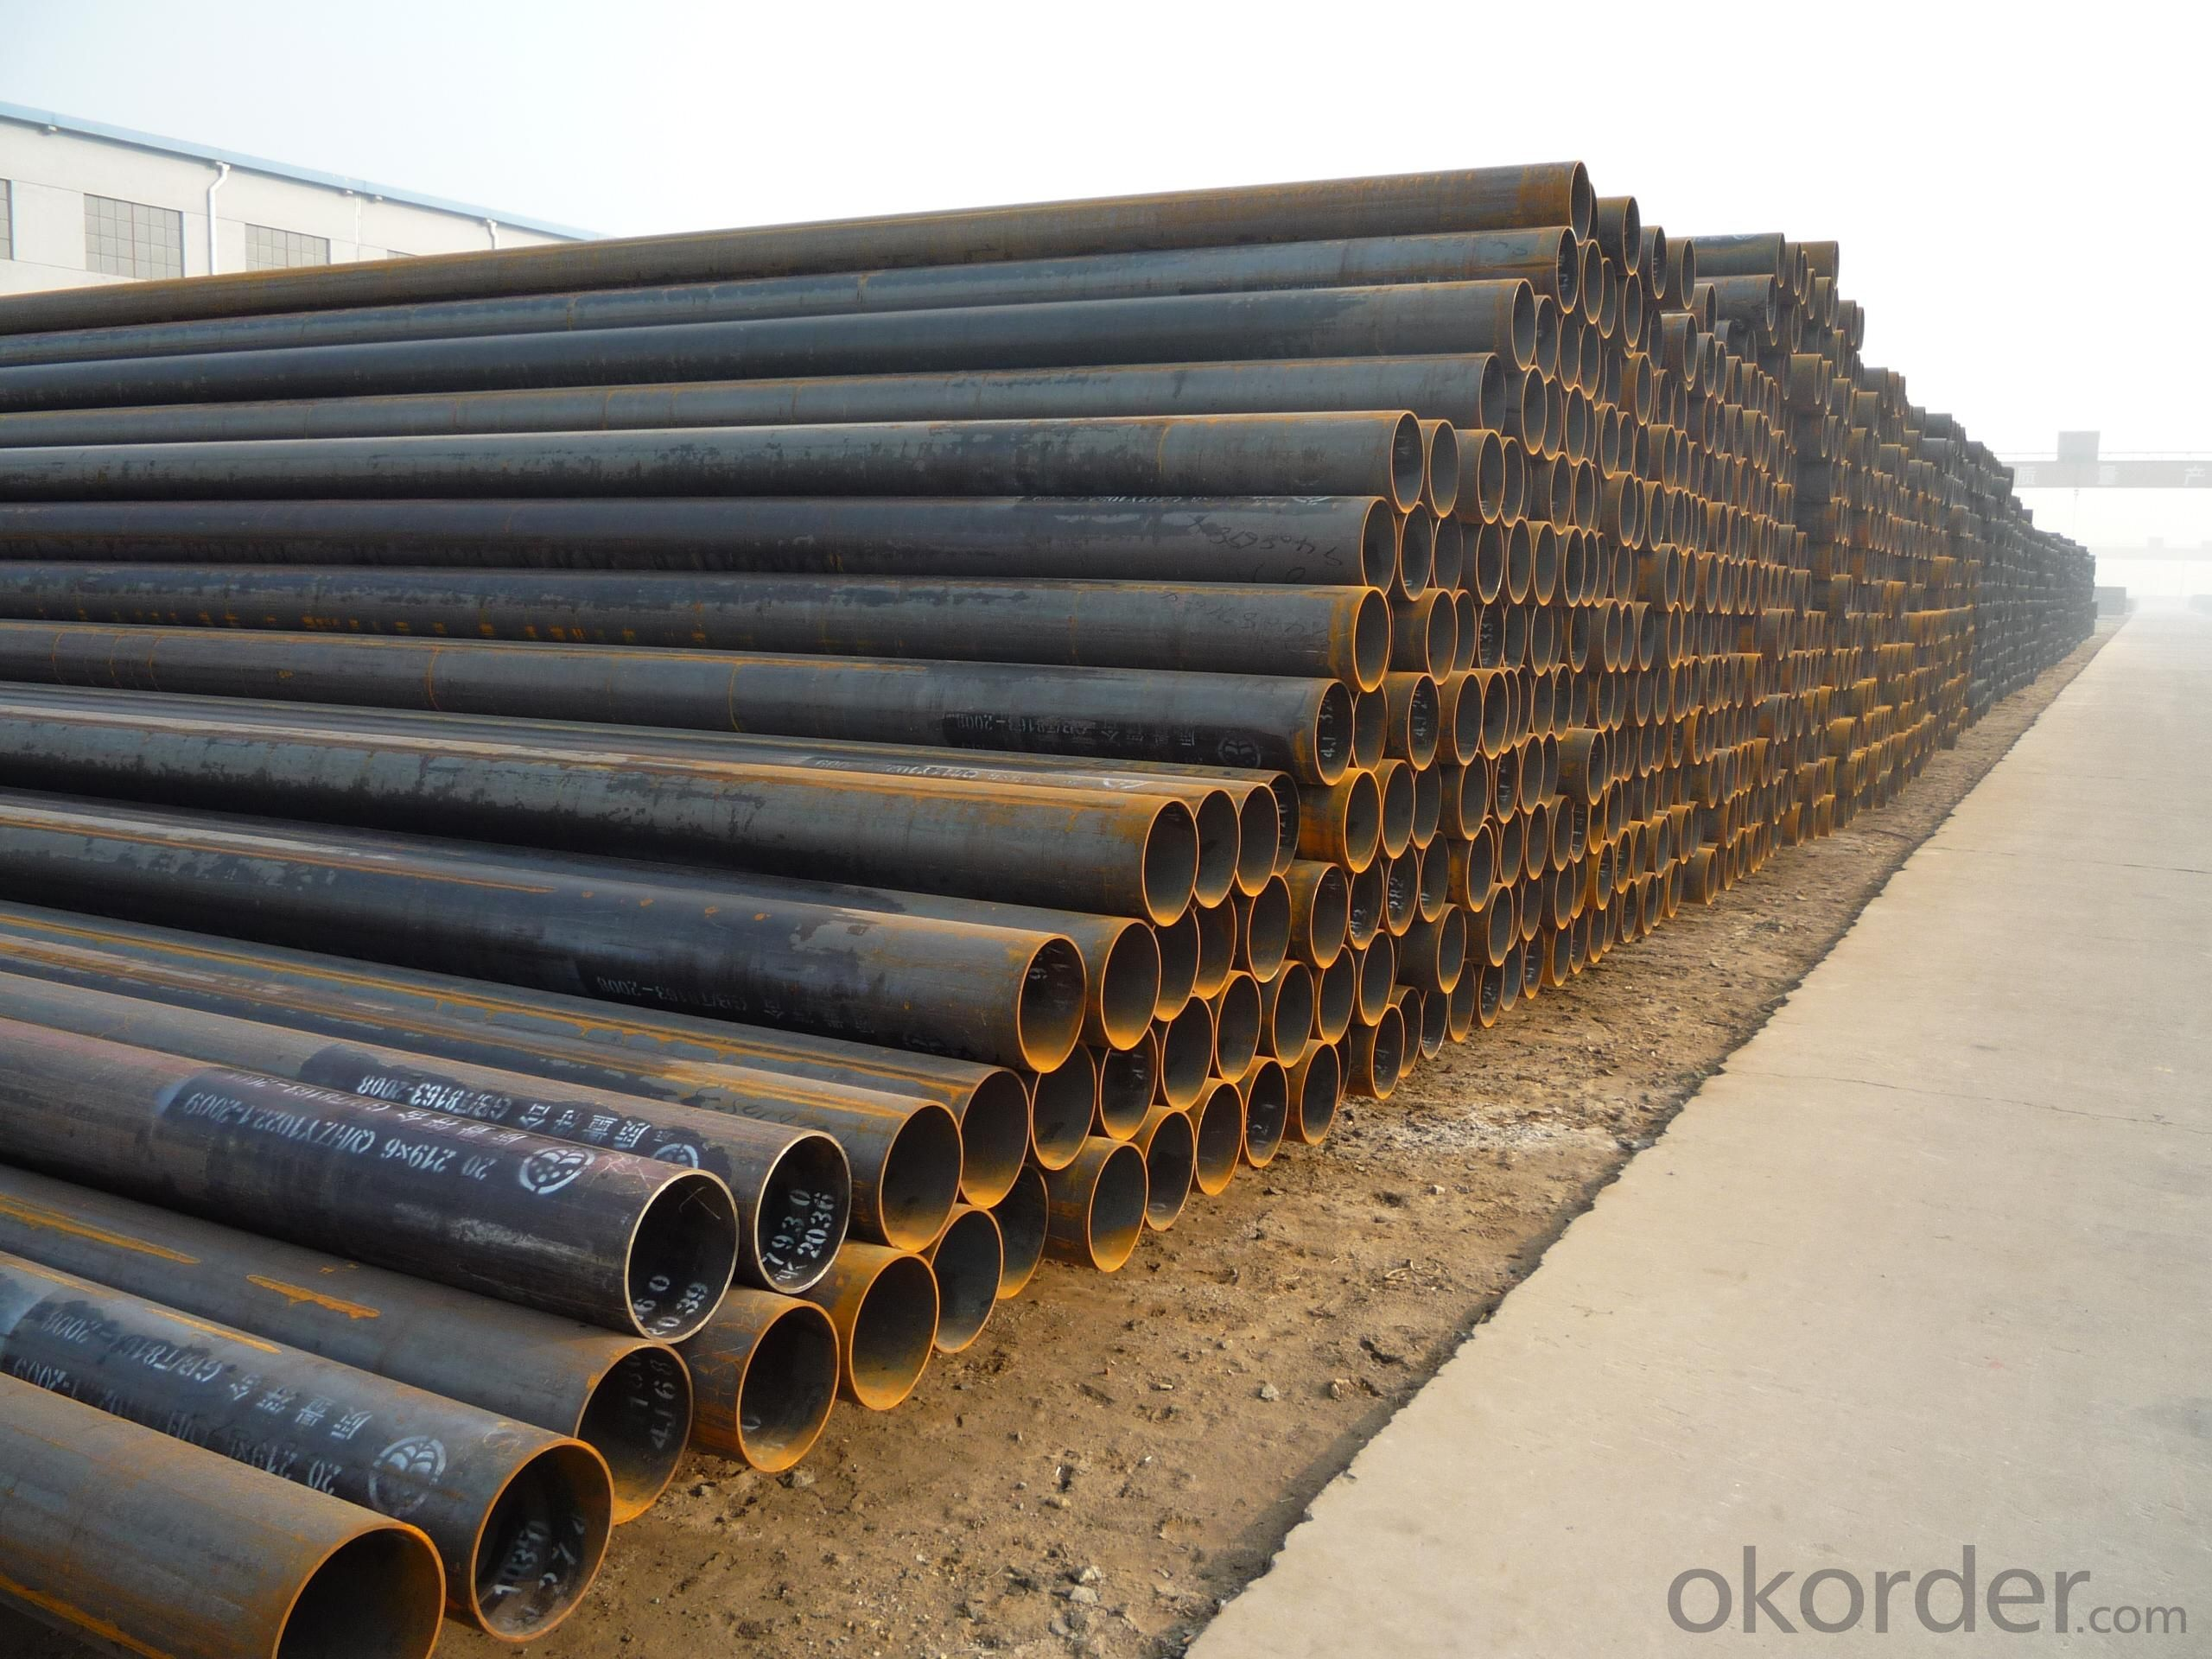 Welded Black ERW Steel Pipe 5L elded Black ERW Steel Pipe 5L